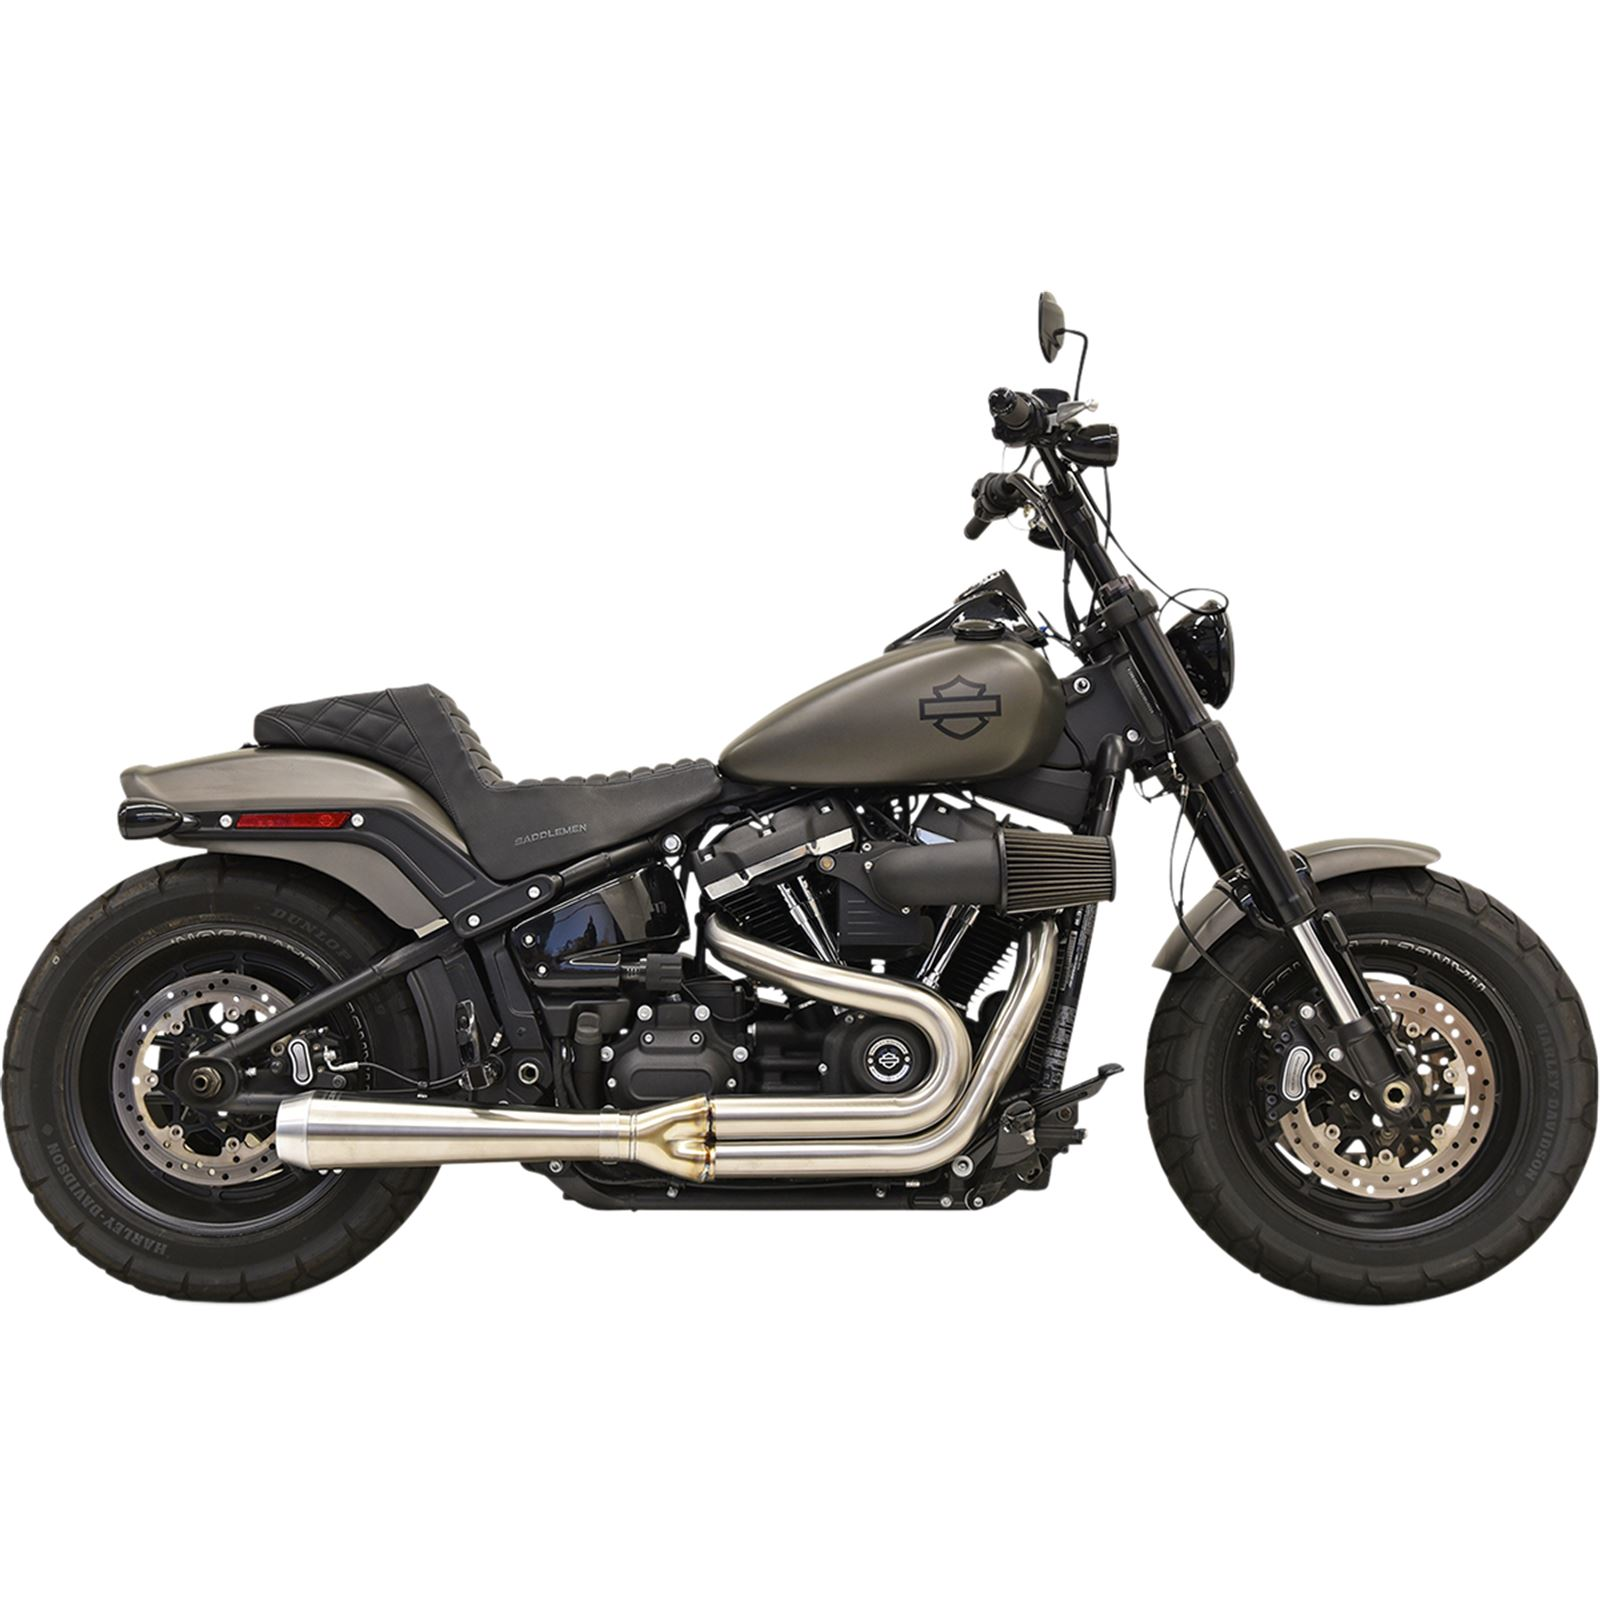 Bassani Manufacturing 2:1 Exhaust - Stainless Steel